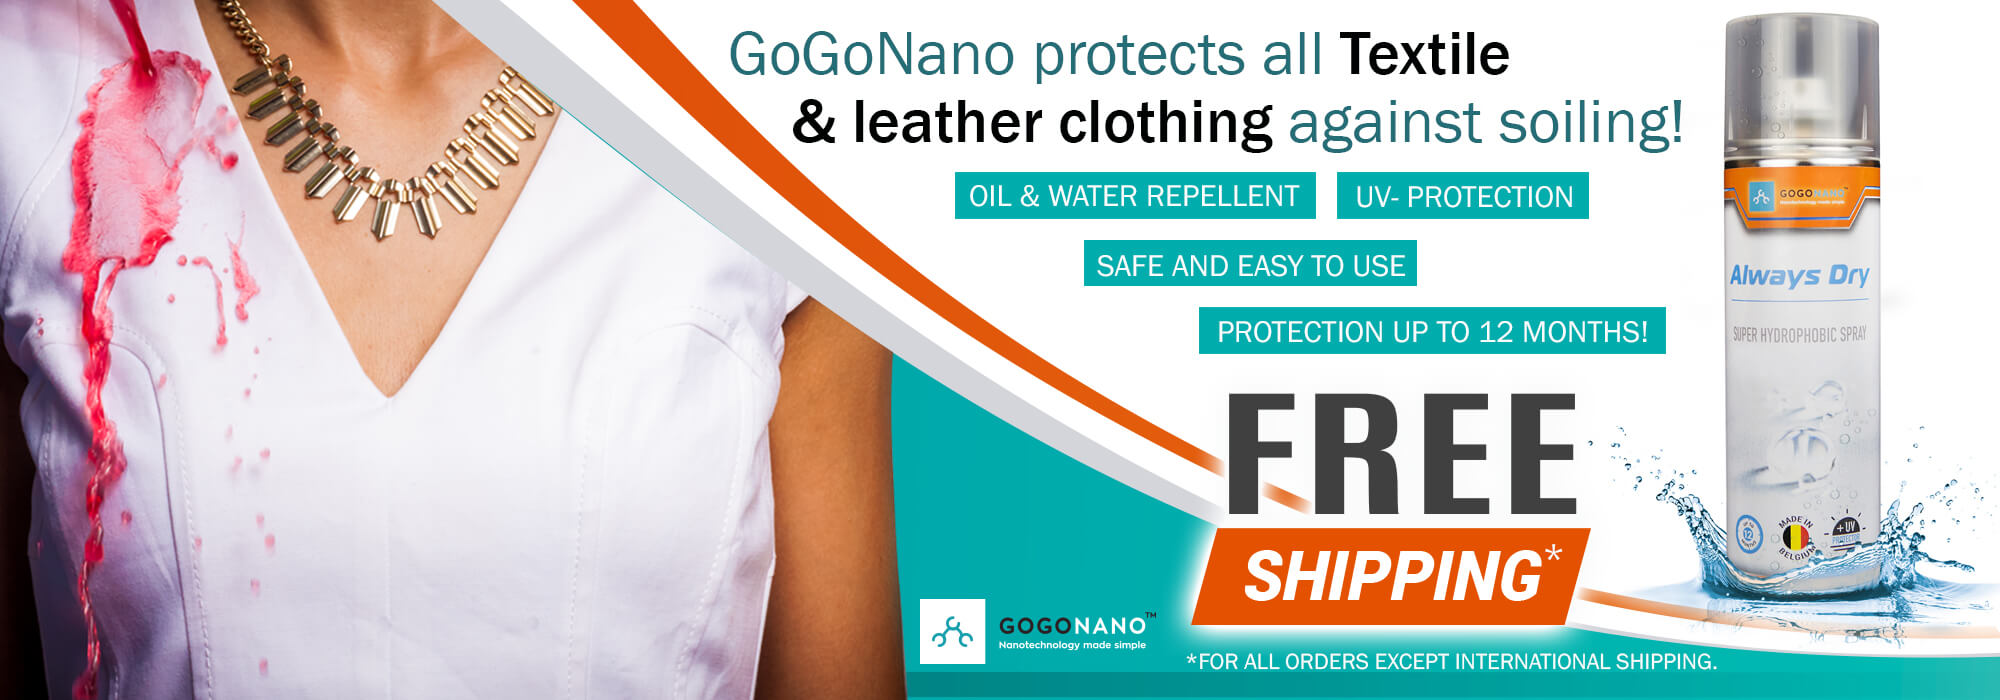 Superhydrophobic-nano-protection-gogonano-always-dry